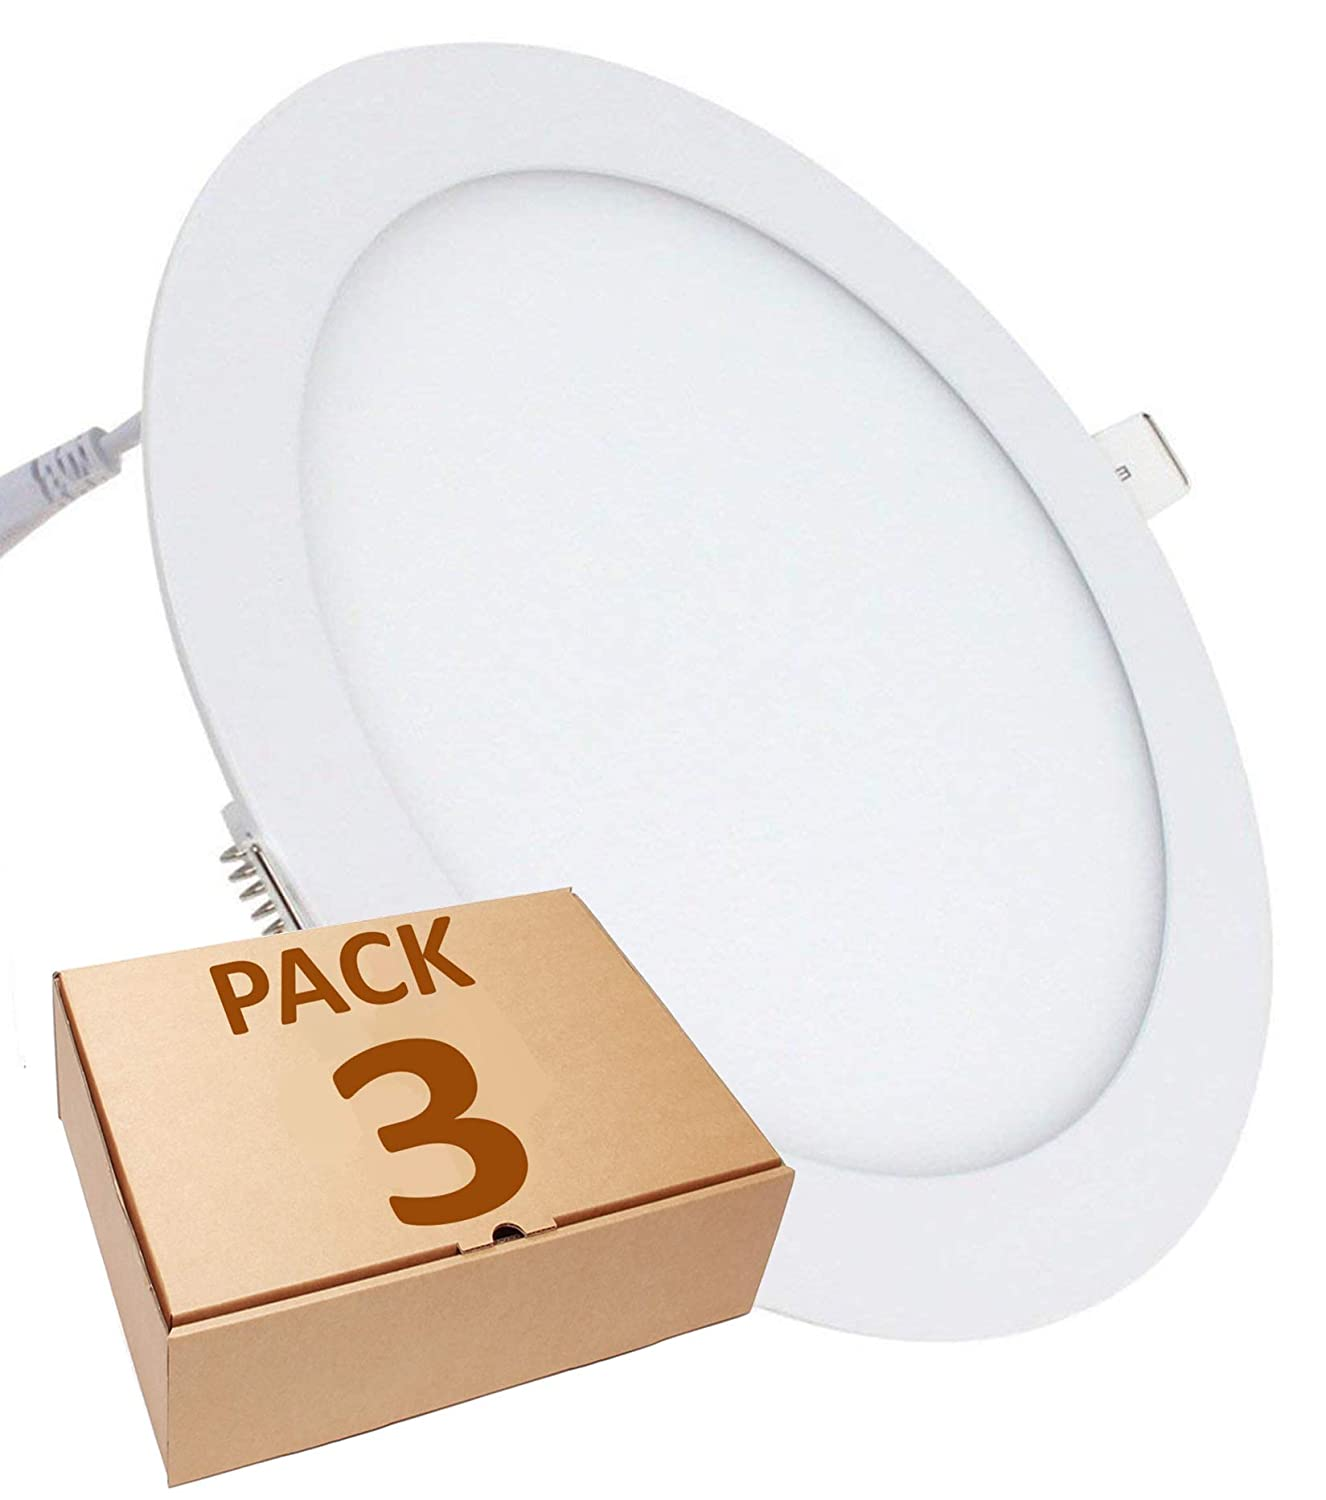 Cold White Pack 3x Round LED Panel 18W Downlight Embed Cut 200mm Standard 1600 real lumens 6500K LA Diameter 225mm.